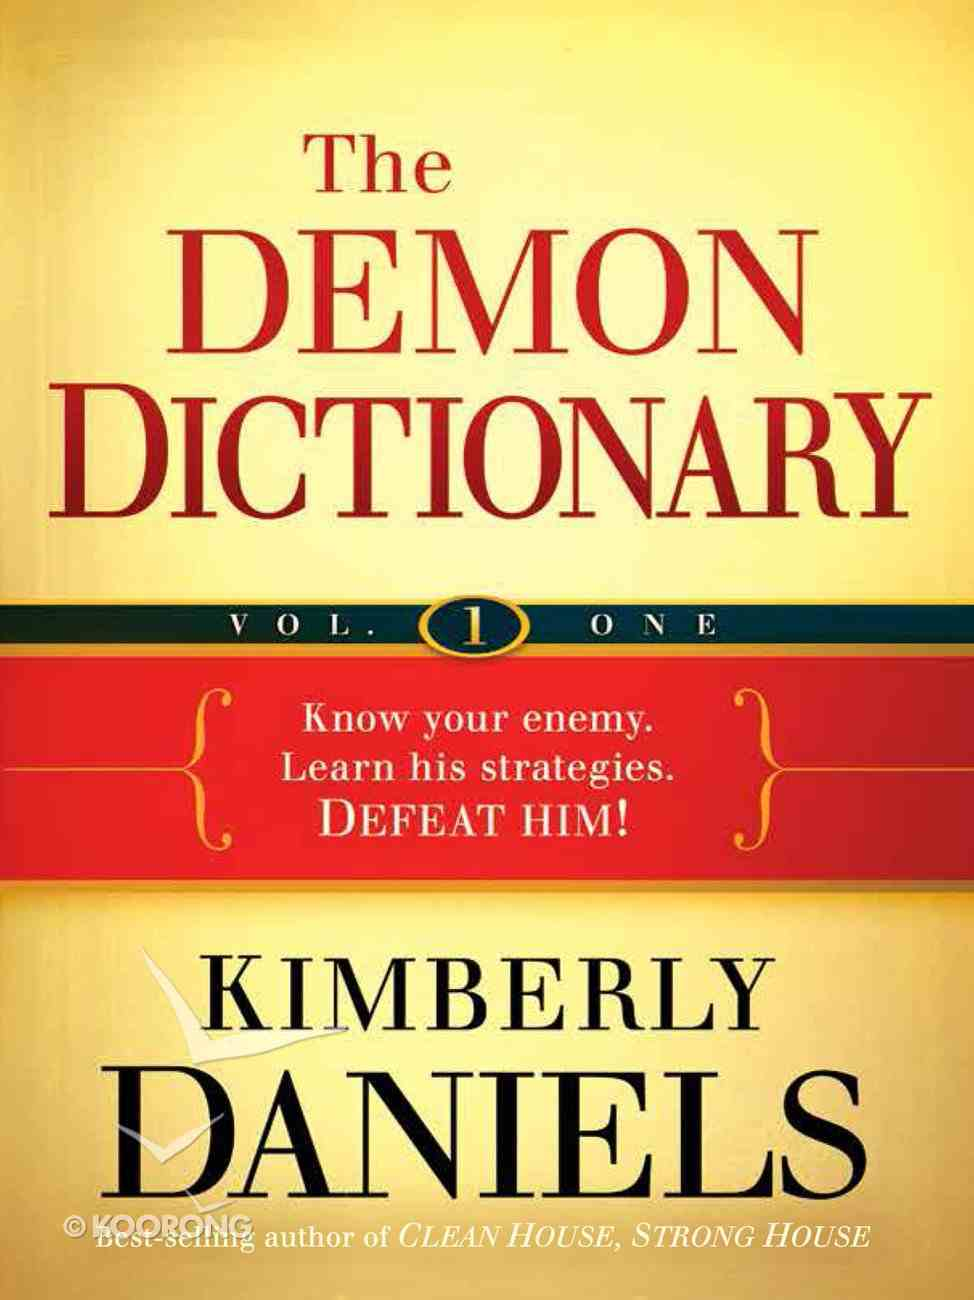 The Demon Dictionary: Know Your Enemy. Learn His Strategies. Defeat Him! (Vol 1) eBook